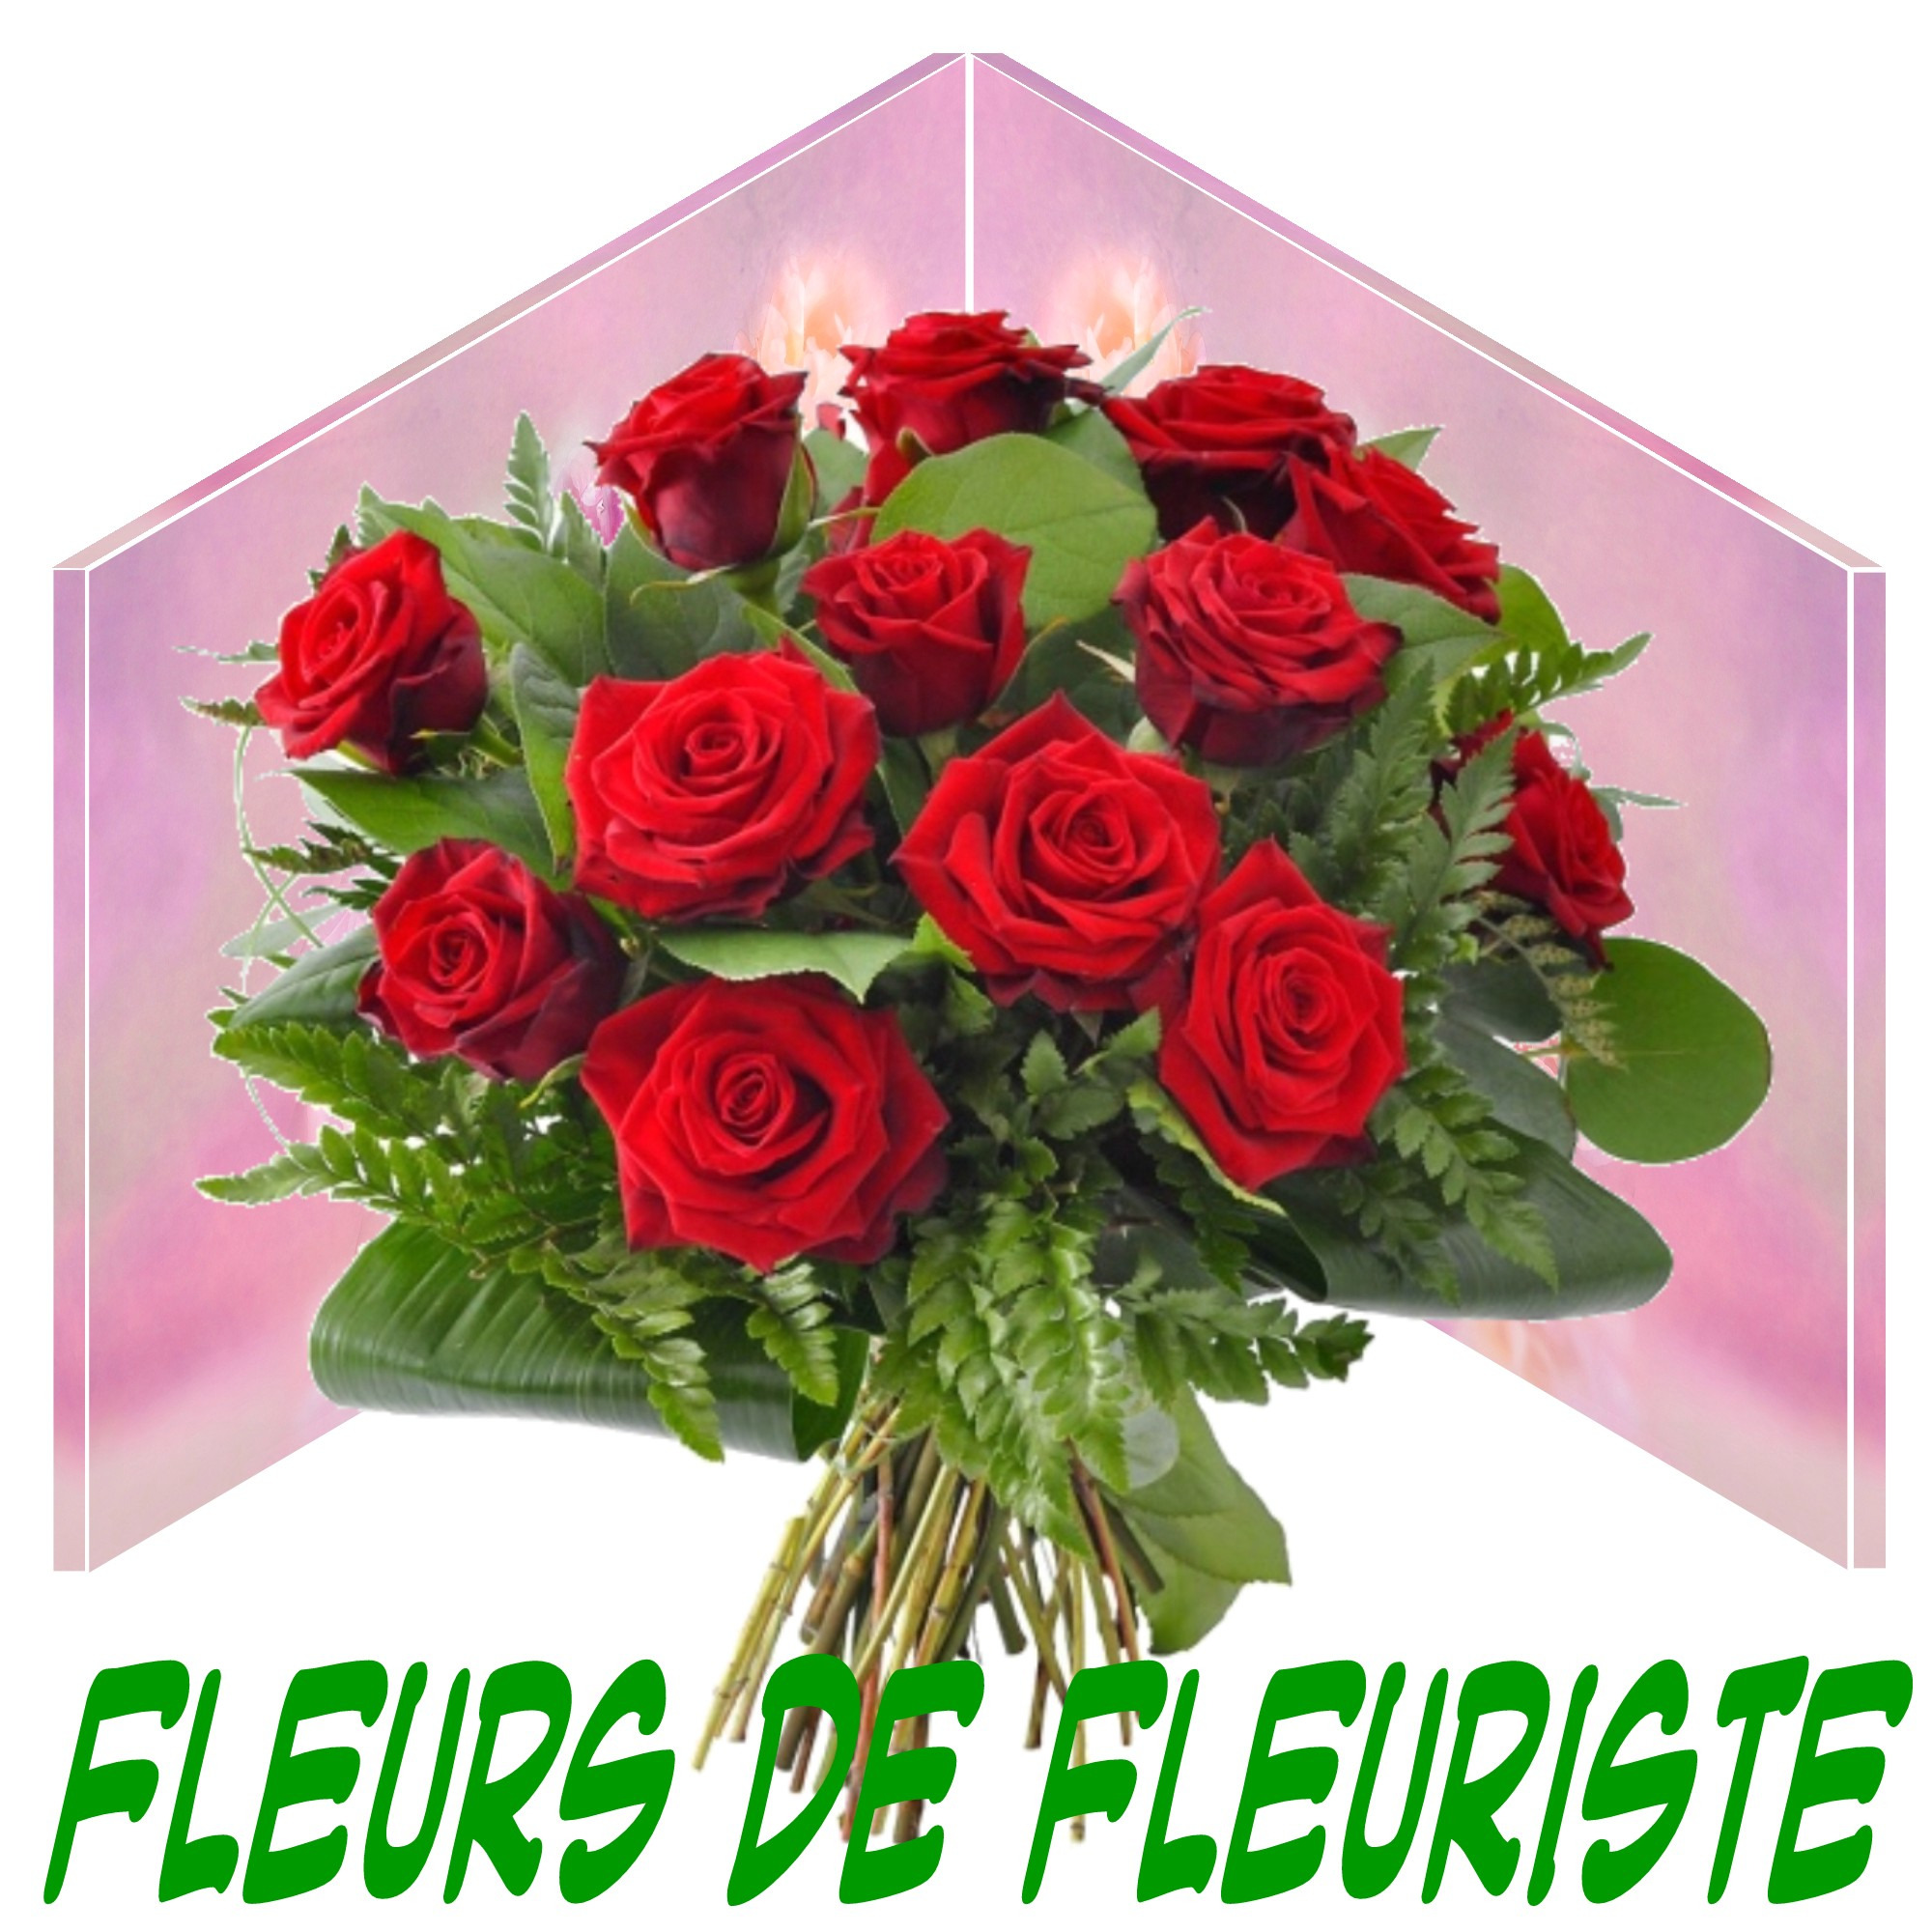 ROSES ROUGES. roses rouges Paris, roses rouges Marseille, roses rouges Lyon, roses rouges Toulouse, roses rouges Nice, roses rouges Nantes, roses rouges Montpellier, roses rouges Strasbourg, roses rouges Bordeaux, roses rouges Lille, roses rouges Rennes, roses rouges Reims, roses rouges Le Havre, roses rouges Saint-Étienne, roses rouges Toulon, roses rouges Grenoble, roses rouges Dijon, roses rouges Angers, roses rouges Nîmes, roses rouges Villeurbanne, roses rouges Le Mans, roses rouges Aix-en-Provence, roses rouges Clermont-Ferrand, roses rouges Brest, roses rouges Tours, roses rouges Limoges, roses rouges Amiens, roses rouges Annecy, roses rouges Perpignan, roses rouges Boulogne-Billancourt, roses rouges Metz, roses rouges Besançon, roses rouges Orléans, roses rouges Saint-Denis, roses rouges Argenteuil, roses rouges Mulhouse, roses rouges Rouen, roses rouges Montreuil, roses rouges Caen, roses rouges Nancy, roses rouges Tourcoing, roses rouges Roubaix, roses rouges Nanterre, roses rouges Vitry-sur-Seine, roses rouges Avignon, roses rouges Créteil, roses rouges Dunkerque, roses rouges Poitiers, roses rouges Asnières-sur-Seine, roses rouges Versailles, roses rouges Colombes, roses rouges Saint-Pierre, roses rouges Aubervilliers, roses rouges Aulnay-sous-Bois, roses rouges Courbevoie, roses rouges Fort-de-France, roses rouges Cherbourg-en-Cotentin17, roses rouges Rueil-Malmaison, roses rouges Pau, roses rouges Champigny-sur-Marne, roses rouges Le Tampon, roses rouges Béziers, roses rouges Calais, roses rouges La Rochelle, roses rouges Saint-Maur-des-Fossés, roses rouges Antibes, roses rouges Cannes, roses rouges Colmar, roses rouges Mérignac, roses rouges Saint-Nazaire, roses rouges Drancy, roses rouges Issy-les-Moulineaux, roses rouges Noisy-le-Grand, roses rouges Bourges, roses rouges La Seyne-sur-Mer, roses rouges Levallois-Perret, roses rouges Quimper, roses rouges Cergy, roses rouges Valence, roses rouges Vénissieux, roses rouges Villeneuve-d'Ascq, roses rouges Antony, roses rouges Pessac, roses rouges Troyes, roses rouges Neuilly-sur-Seine, roses rouges Clichy, roses rouges Montauban, roses rouges Chambéry, roses rouges Ivry-sur-Seine, roses rouges Niort, roses rouges Lorient, roses rouges Sarcelles, roses rouges Villejuif, roses rouges Hyères, roses rouges Saint-Quentin, roses rouges Les Abymes, roses rouges Le Blanc-Mesnil, roses rouges Pantin, roses rouges Maisons-Alfort, roses rouges Beauvais, roses rouges Évry, roses rouges Épinay-sur-Seine, roses rouges Chelles, roses rouges Cholet, roses rouges Meaux, roses rouges Fontenay-sous-Bois, roses rouges La Roche-sur-Yon, roses rouges Saint-Louis, roses rouges Narbonne, roses rouges Bondy, roses rouges Vannes, roses rouges Fréjus, roses rouges Arles, roses rouges Clamart, roses rouges Sartrouville, roses rouges Bobigny, roses rouges Grasse, roses rouges Sevran, roses rouges Corbeil-Essonnes, roses rouges Laval, roses rouges Belfort, roses rouges Albi, roses rouges Vincennes, roses rouges Évreux, roses rouges Martigues, roses rouges Cagnes-sur-Mer, roses rouges Bayonne, roses rouges Montrouge, roses rouges Suresnes, roses rouges Saint-Ouen, roses rouges Massy, roses rouges Charleville-Mézières, roses rouges Brive-la-Gaillarde, roses rouges Vaulx-en-Velin, roses rouges Carcassonne, roses rouges Saint-Herblain, roses rouges Saint-Malo, roses rouges Blois, roses rouges Aubagne, roses rouges Chalon-sur-Saône, roses rouges Meudon, roses rouges Châlons-en-Champagne, roses rouges Puteaux, roses rouges Saint-Brieuc, roses rouges Saint-Priest, roses rouges Salon-de-Provence, roses rouges Mantes-la-Jolie, roses rouges Rosny-sous-Bois, roses rouges Gennevilliers, roses rouges Livry-Gargan, roses rouges Alfortville, roses rouges Bastia, roses rouges Valenciennes, roses rouges Choisy-le-Roi, roses rouges Châteauroux, roses rouges Sète, roses rouges Saint-Laurent-du-Maroni, roses rouges Noisy-le-Sec, roses rouges Istres, roses rouges Garges-lès-Gonesse, roses rouges Boulogne-sur-Mer, roses rouges Caluire-et-Cuire, roses rouges Talence, roses rouges Angoulême, roses rouges La Courneuve, roses rouges Le Cannet, roses rouges Castres, roses rouges Wattrelos, roses rouges Bourg-en-Bresse, roses rouges Gap, roses rouges Arras, roses rouges Bron, roses rouges Thionville, roses rouges Tarbes, roses rouges Draguignan, roses rouges Compiègne, roses rouges Douai, roses rouges Saint-Germain-en-Laye, roses rouges Melun, roses rouges Rezé, roses rouges Gagny, roses rouges Stains, roses rouges Alès, roses rouges Bagneux, roses rouges Marcq-en-Barœul, roses rouges Chartres, roses rouges Colomiers, roses rouges Anglet, roses rouges Saint-Martin-d'Hères, roses rouges Montélimar, roses rouges Pontault-Combault, roses rouges Joué-lès-Tours, roses rouges Châtillon, roses rouges Poissy, roses rouges Montluçon, roses rouges Villefranche-sur-Saône, roses rouges Villepinte, roses rouges Savigny-sur-Orge, roses rouges Bagnolet, roses rouges Sainte-Geneviève-des-Bois, roses rouges Échirolles, roses rouges La Ciotat, roses rouges Creil, roses rouges Annemasse, roses rouges Saint-Martin, roses rouges Conflans-Sainte-Honorine, roses rouges Thonon-les-Bains, roses rouges Saint-Chamond, roses rouges Roanne, roses rouges Neuilly-sur-Marne, roses rouges Auxerre, roses rouges Tremblay-en-France, roses rouges Saint-Raphaël, roses rouges Franconville, roses rouges Haguenau, roses rouges Nevers, roses rouges Vitrolles, roses rouges Agen, roses rouges Le Perreux-sur-Marne, roses rouges Marignane, roses rouges Saint-Leu, roses rouges Romans-sur-Isère, roses rouges Six-Fours-les-Plages, roses rouges Châtenay-Malabry, roses rouges Mâcon, roses rouges Montigny-le-Bretonneux, roses rouges Palaiseau, roses rouges Cambrai, roses rouges Sainte-Marie, roses rouges Meyzieu, roses rouges Athis-Mons, roses rouges Villeneuve-Saint-Georges, roses rouges Matoury, roses rouges Trappes, roses rouges Les Mureaux, roses rouges Houilles, roses rouges Épinal, roses rouges Plaisir, roses rouges Châtellerault, roses rouges Schiltigheim, roses rouges Villenave-d'Ornon, roses rouges Nogent-sur-Marne, roses rouges Liévin, roses rouges Baie-Mahault, roses rouges Chatou, roses rouges Goussainville, roses rouges Dreux, roses rouges Viry-Châtillon, roses rouges L'Haÿ-les-Roses, roses rouges Vigneux-sur-Seine, roses rouges Charenton-le-Pont, roses rouges Mont-de-Marsan, roses rouges Saint-Médard-en-Jalles, roses rouges Lens, roses rouges Rillieux-la-Pape, roses rouges Savigny-le-Temple, roses rouges Maubeuge, roses rouges Clichy-sous-Bois